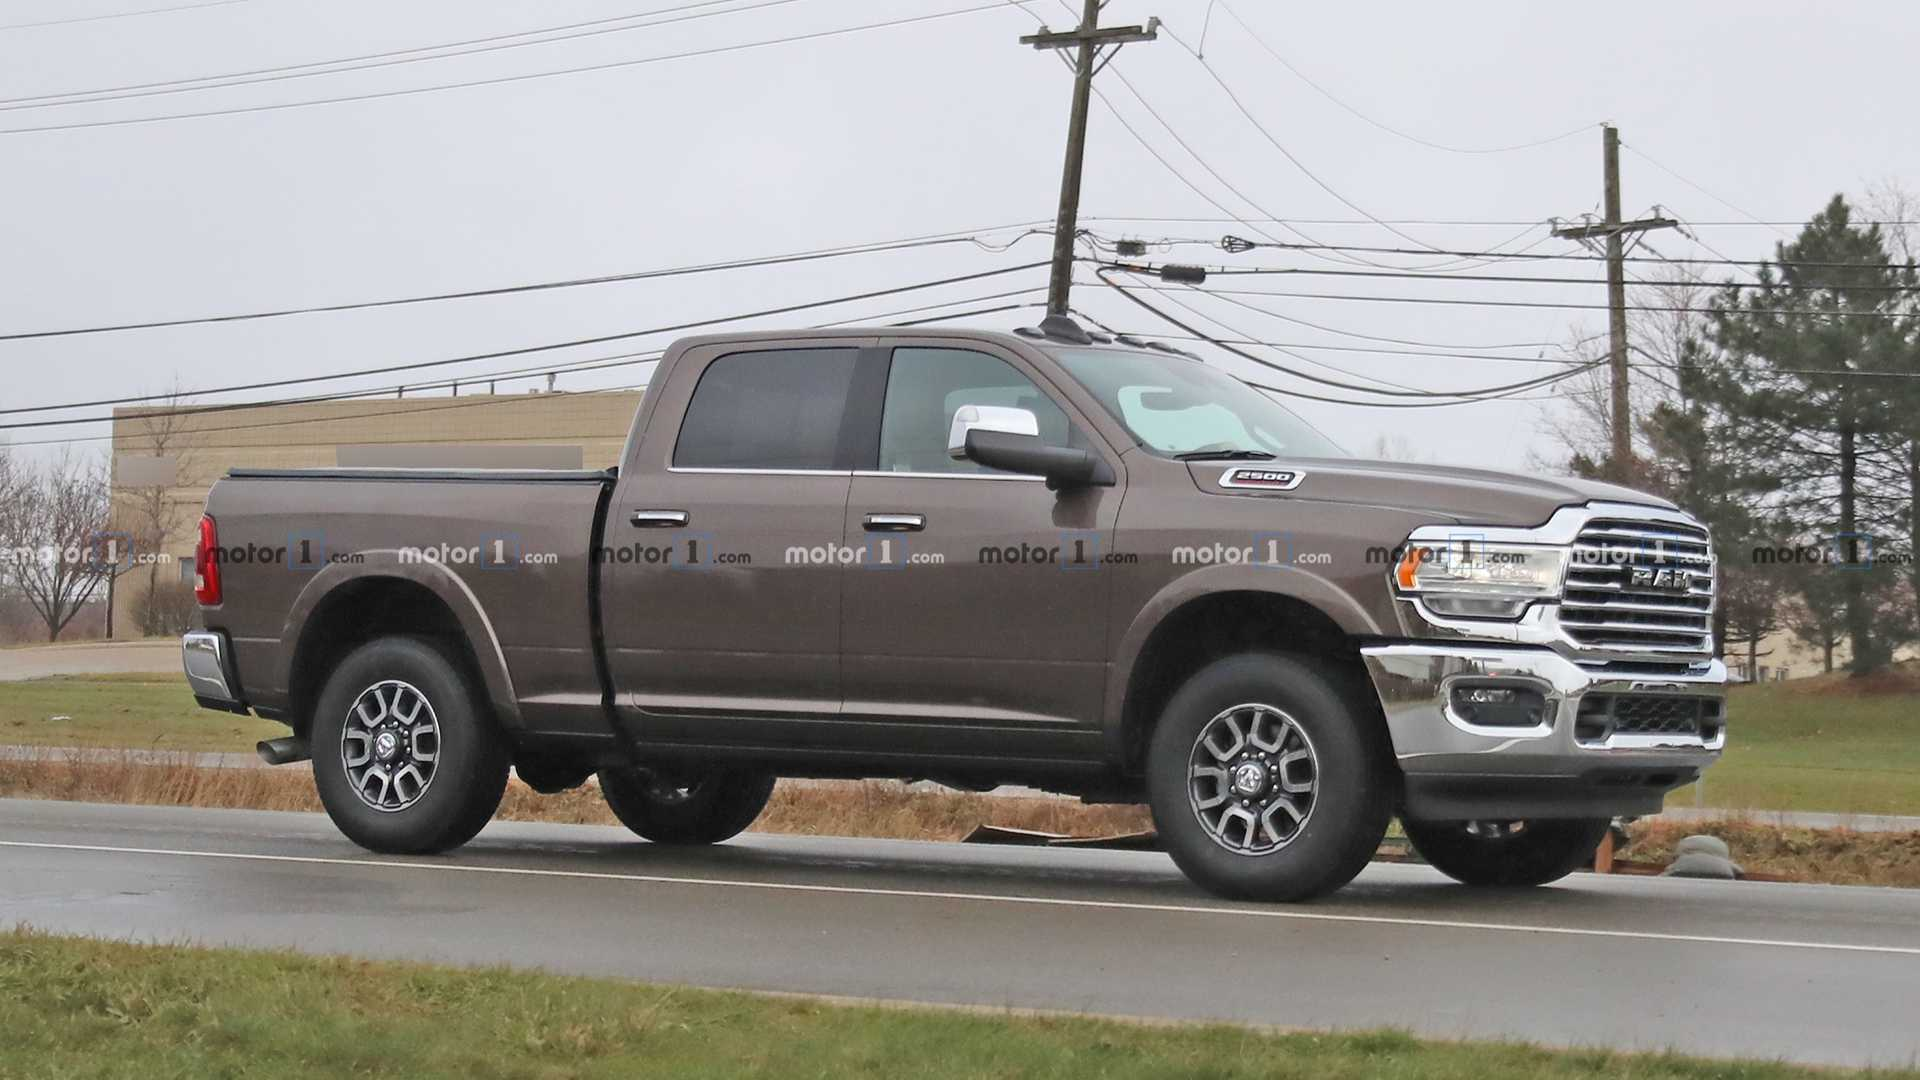 80 Best Review 2020 Dodge Ram Pickup Reviews by 2020 Dodge Ram Pickup